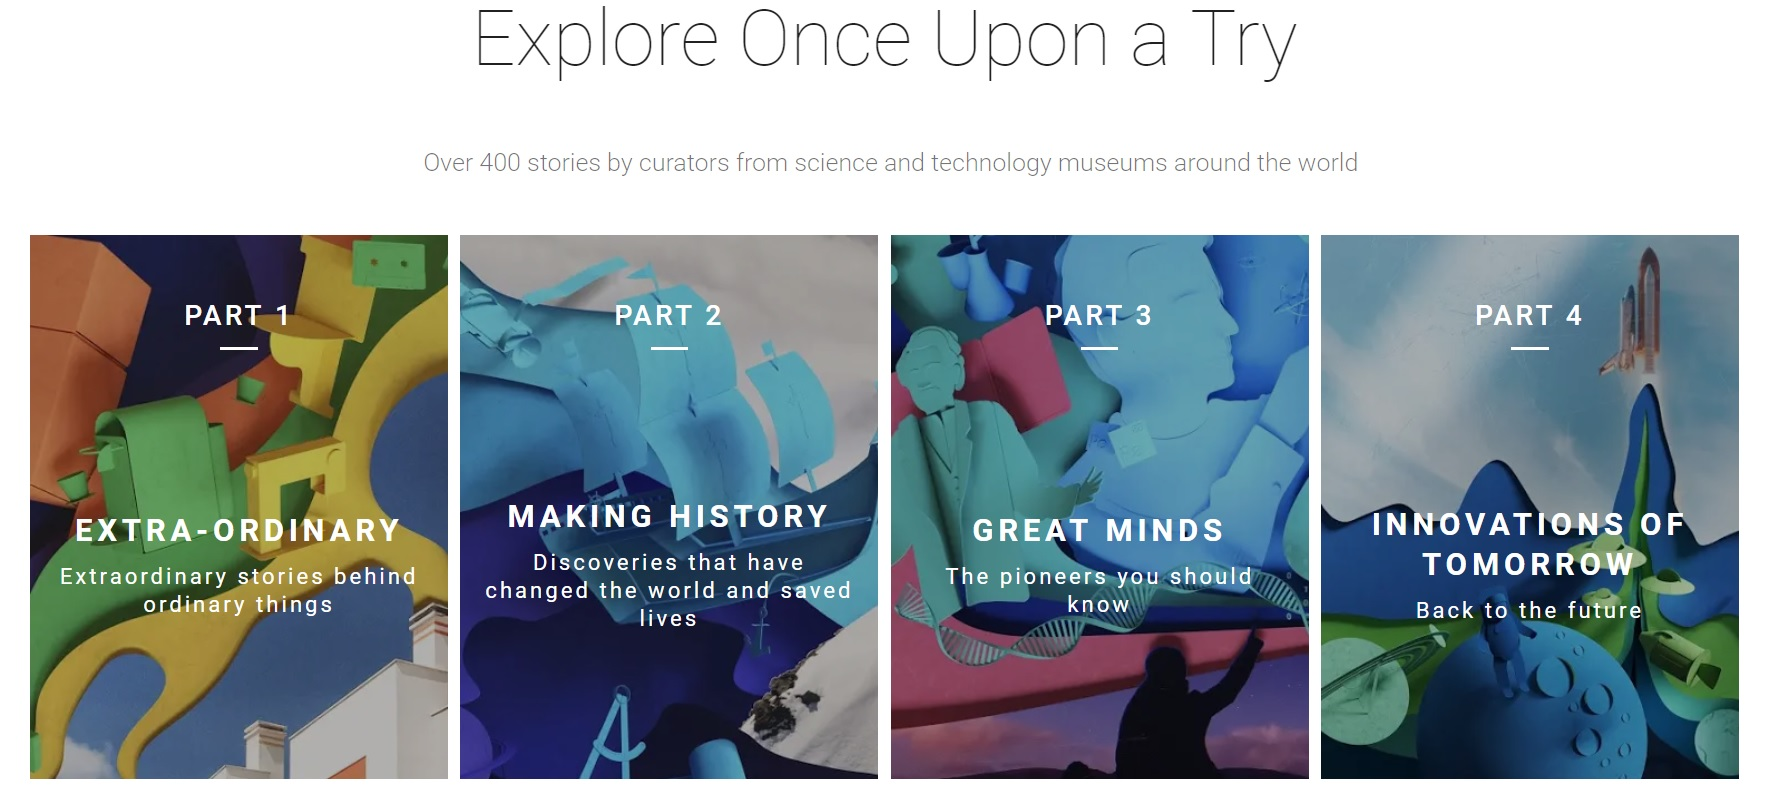 7d184a82a39 Per the press release, the goal of this project is to present meaningful  digital storytelling that encompasses both the history and future of  innovation to ...